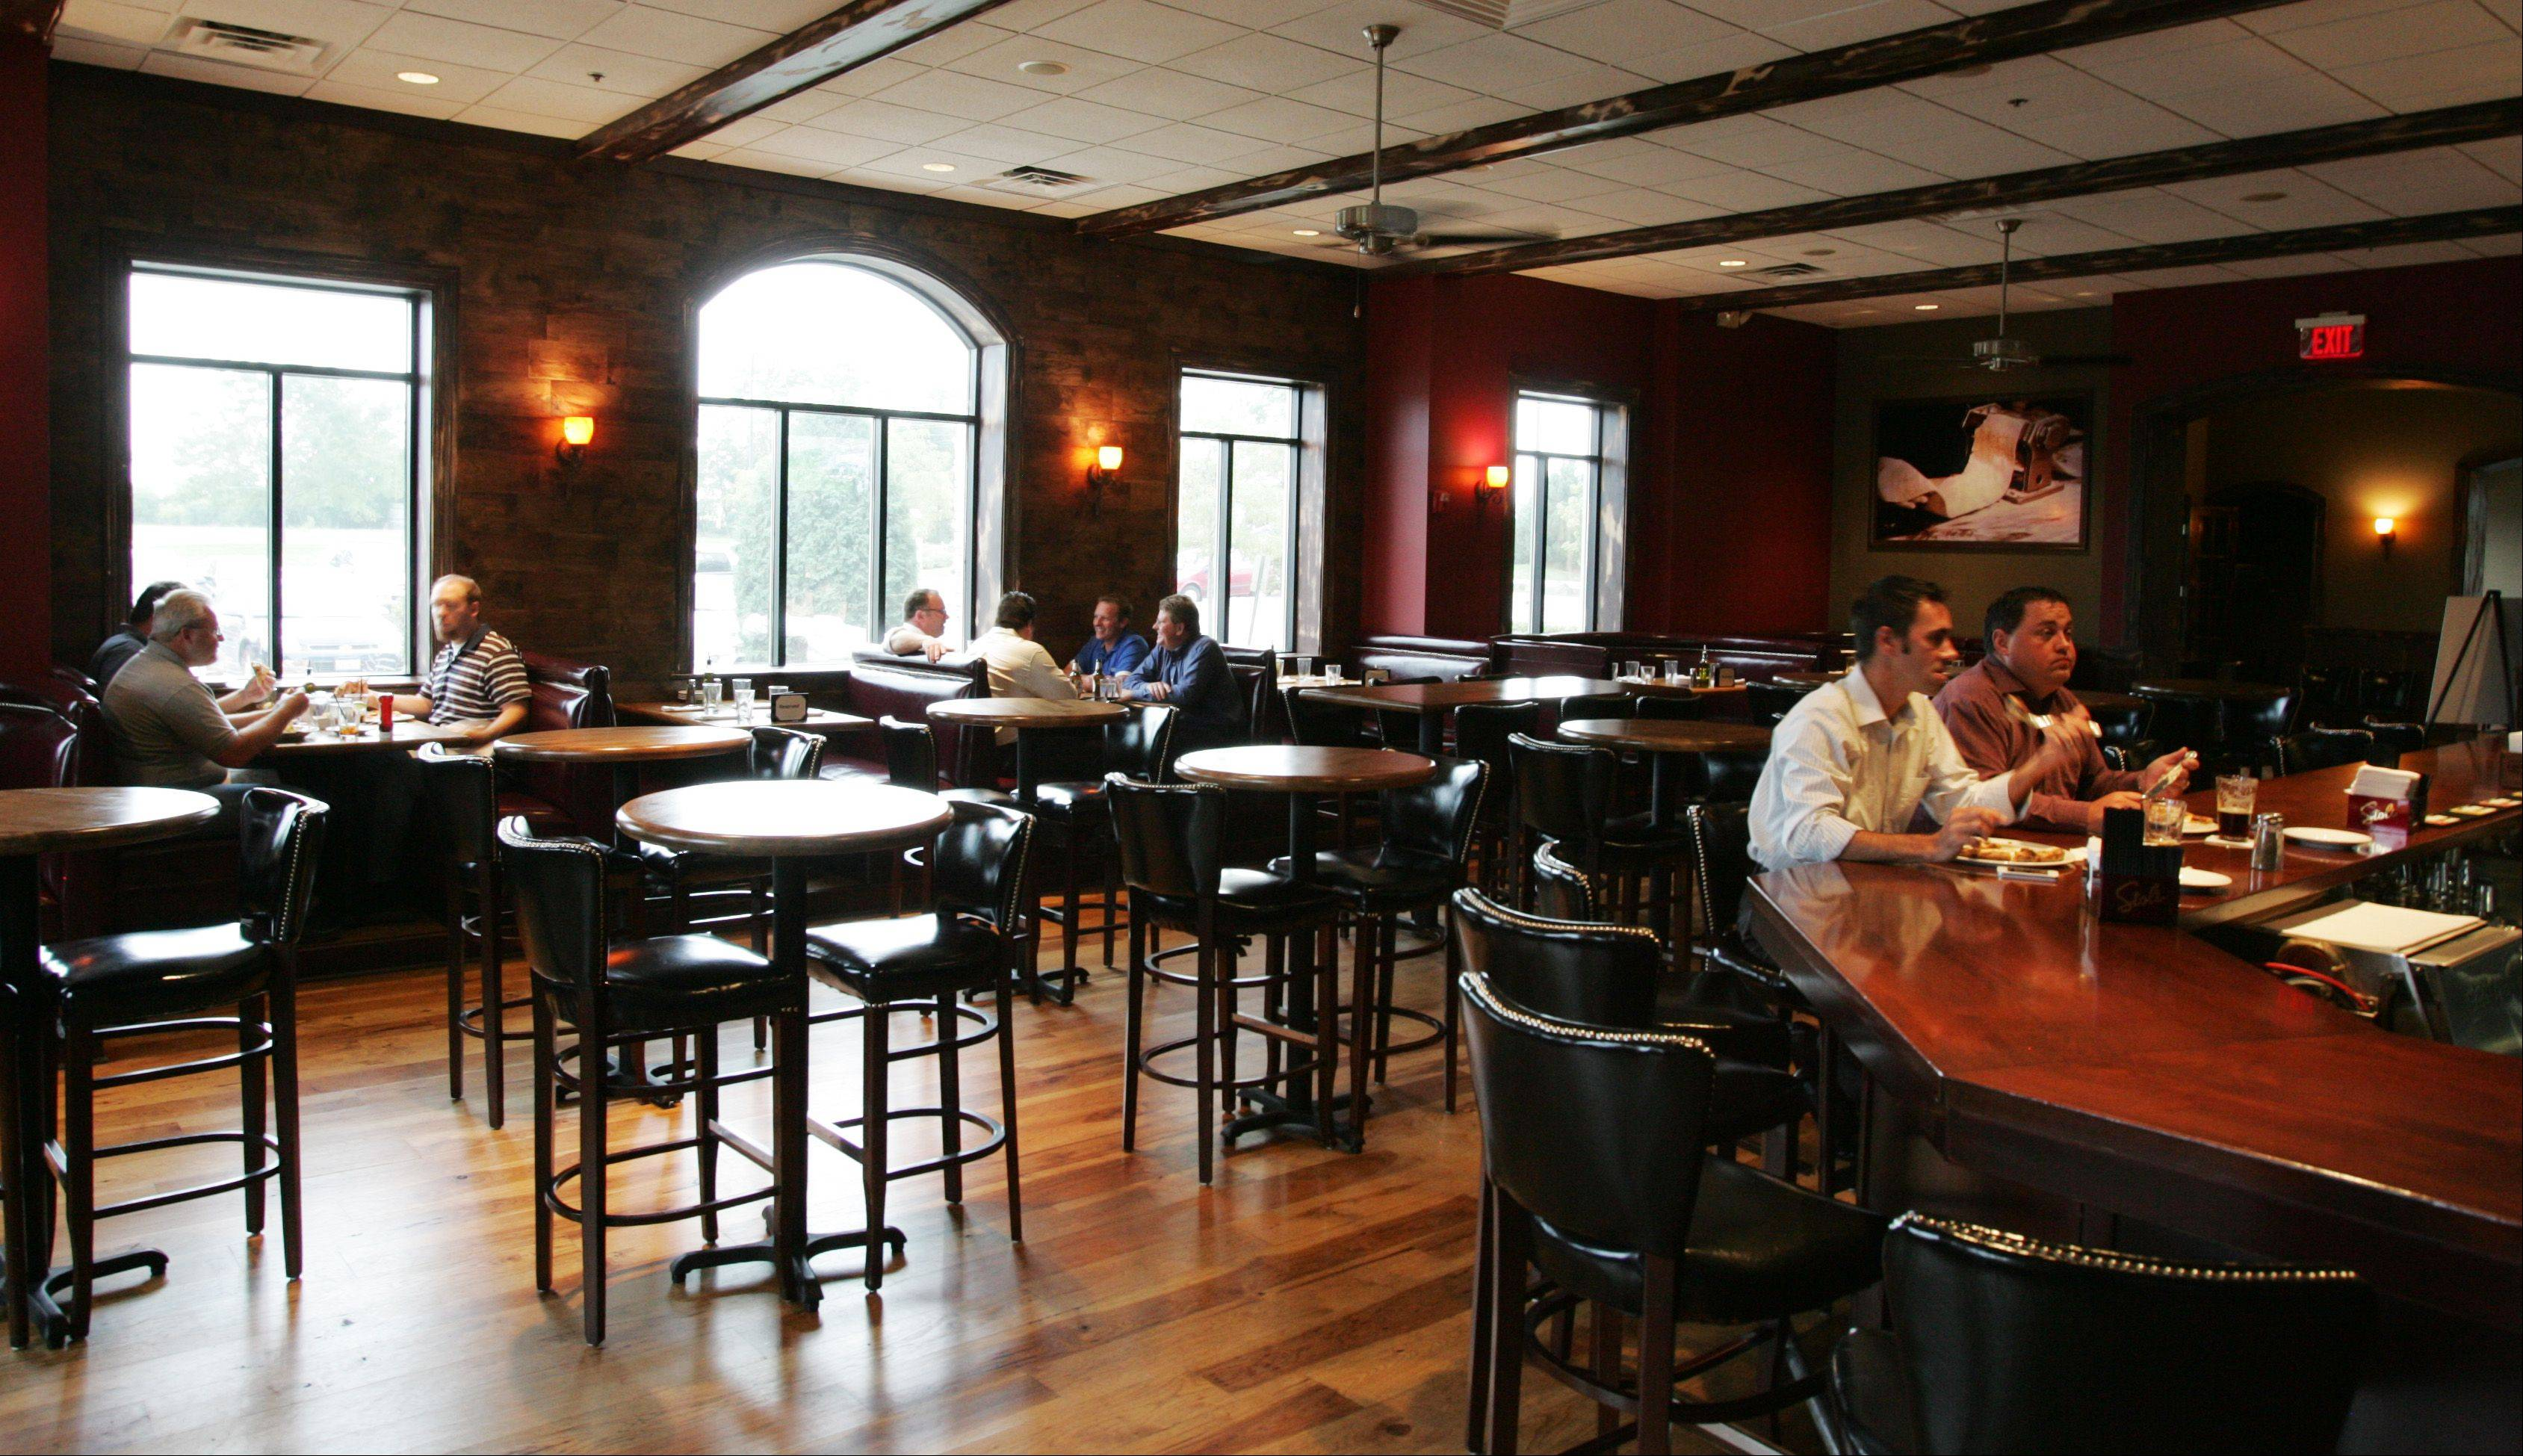 Customers eat in the spacious bar area at Marzano's Wood Fired Italian restaurant in McHenry.